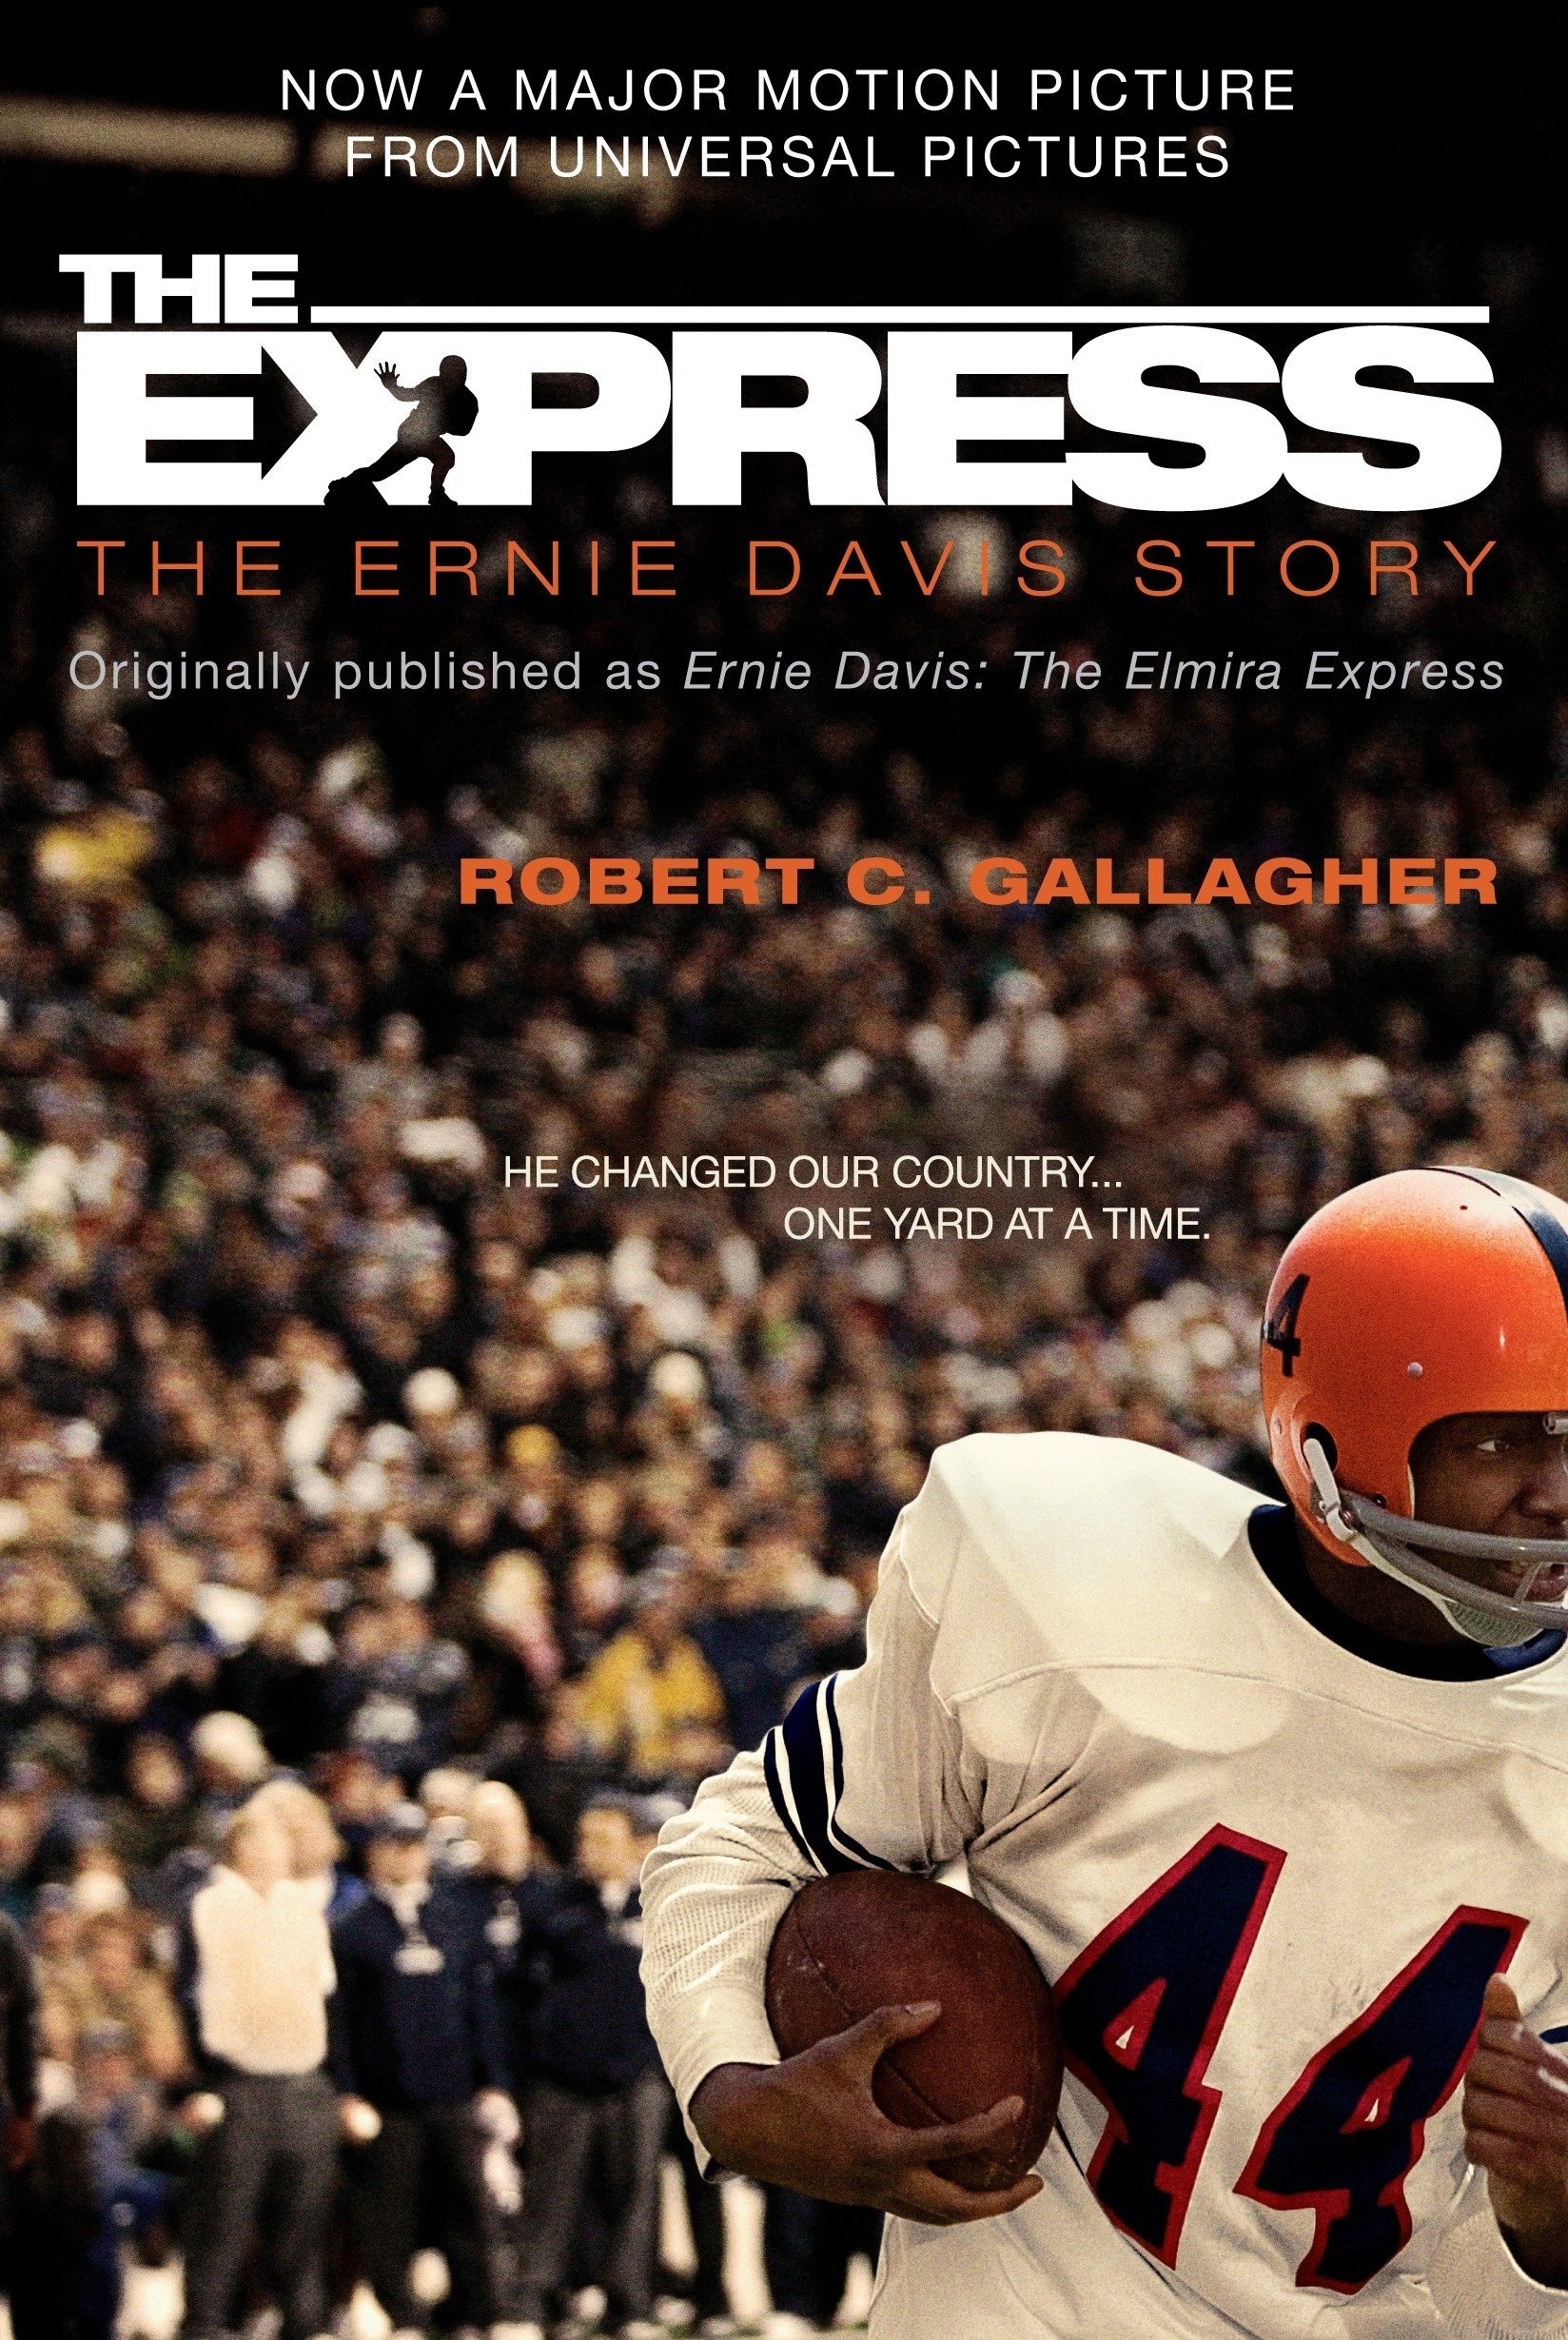 The Express: The Ernie Davis Story book cover